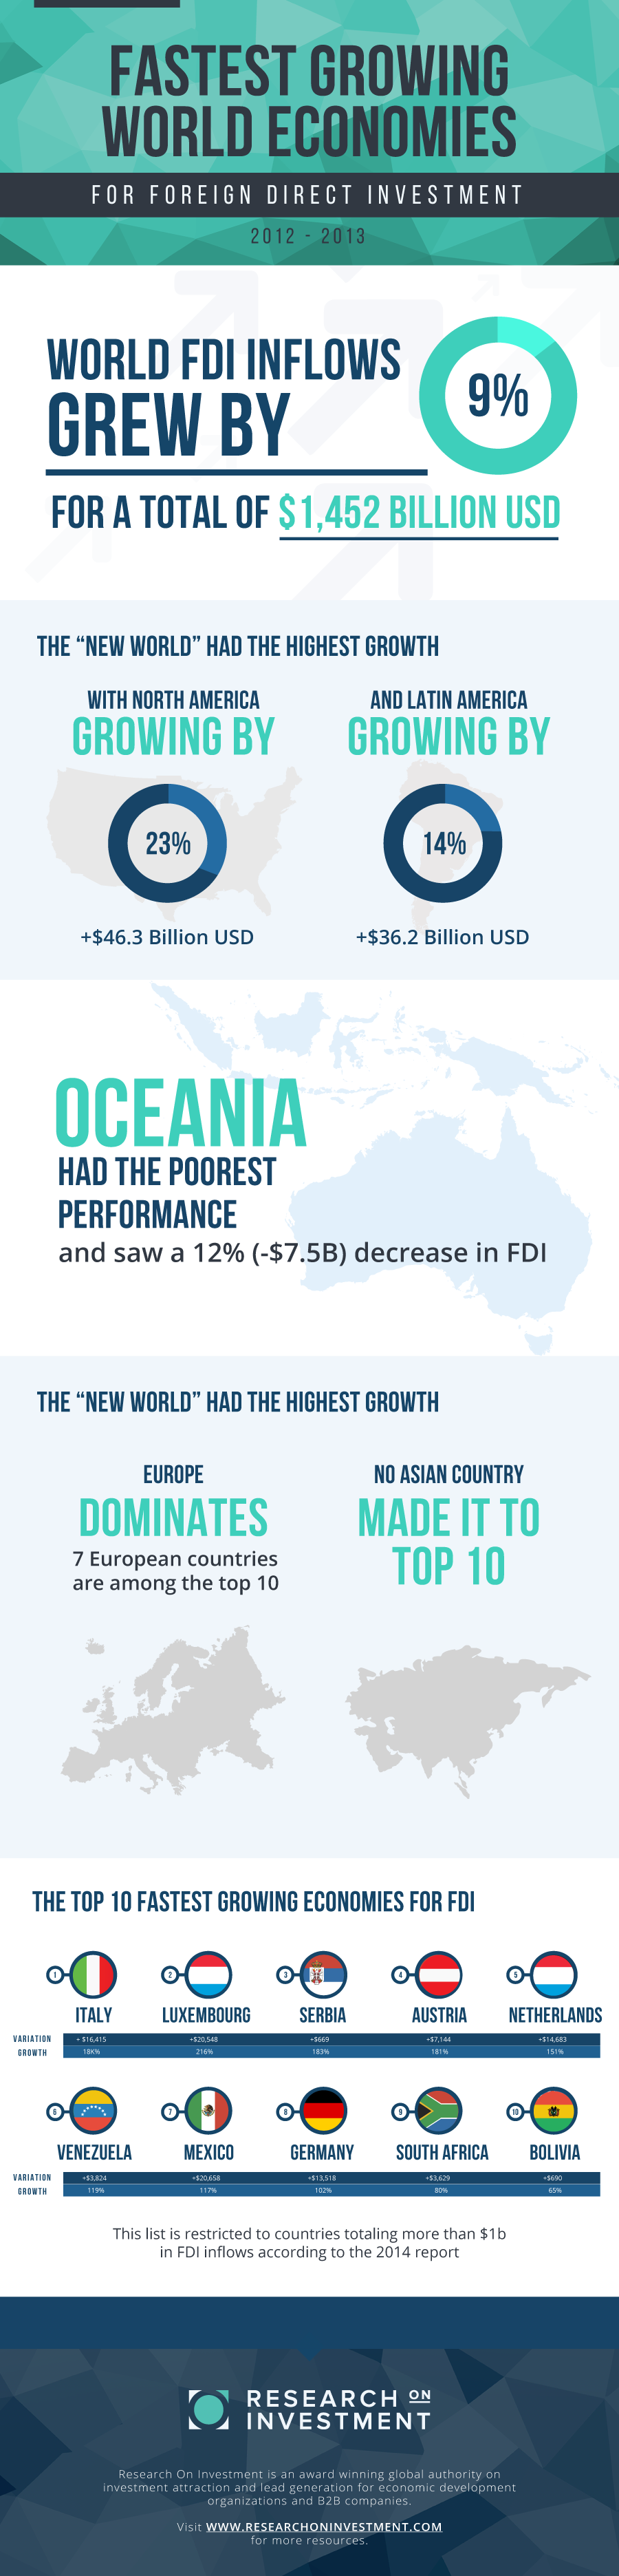 INFOGRAPHIC: FASTEST GROWING WORLD ECONOMIES FOR FDI IN 2014